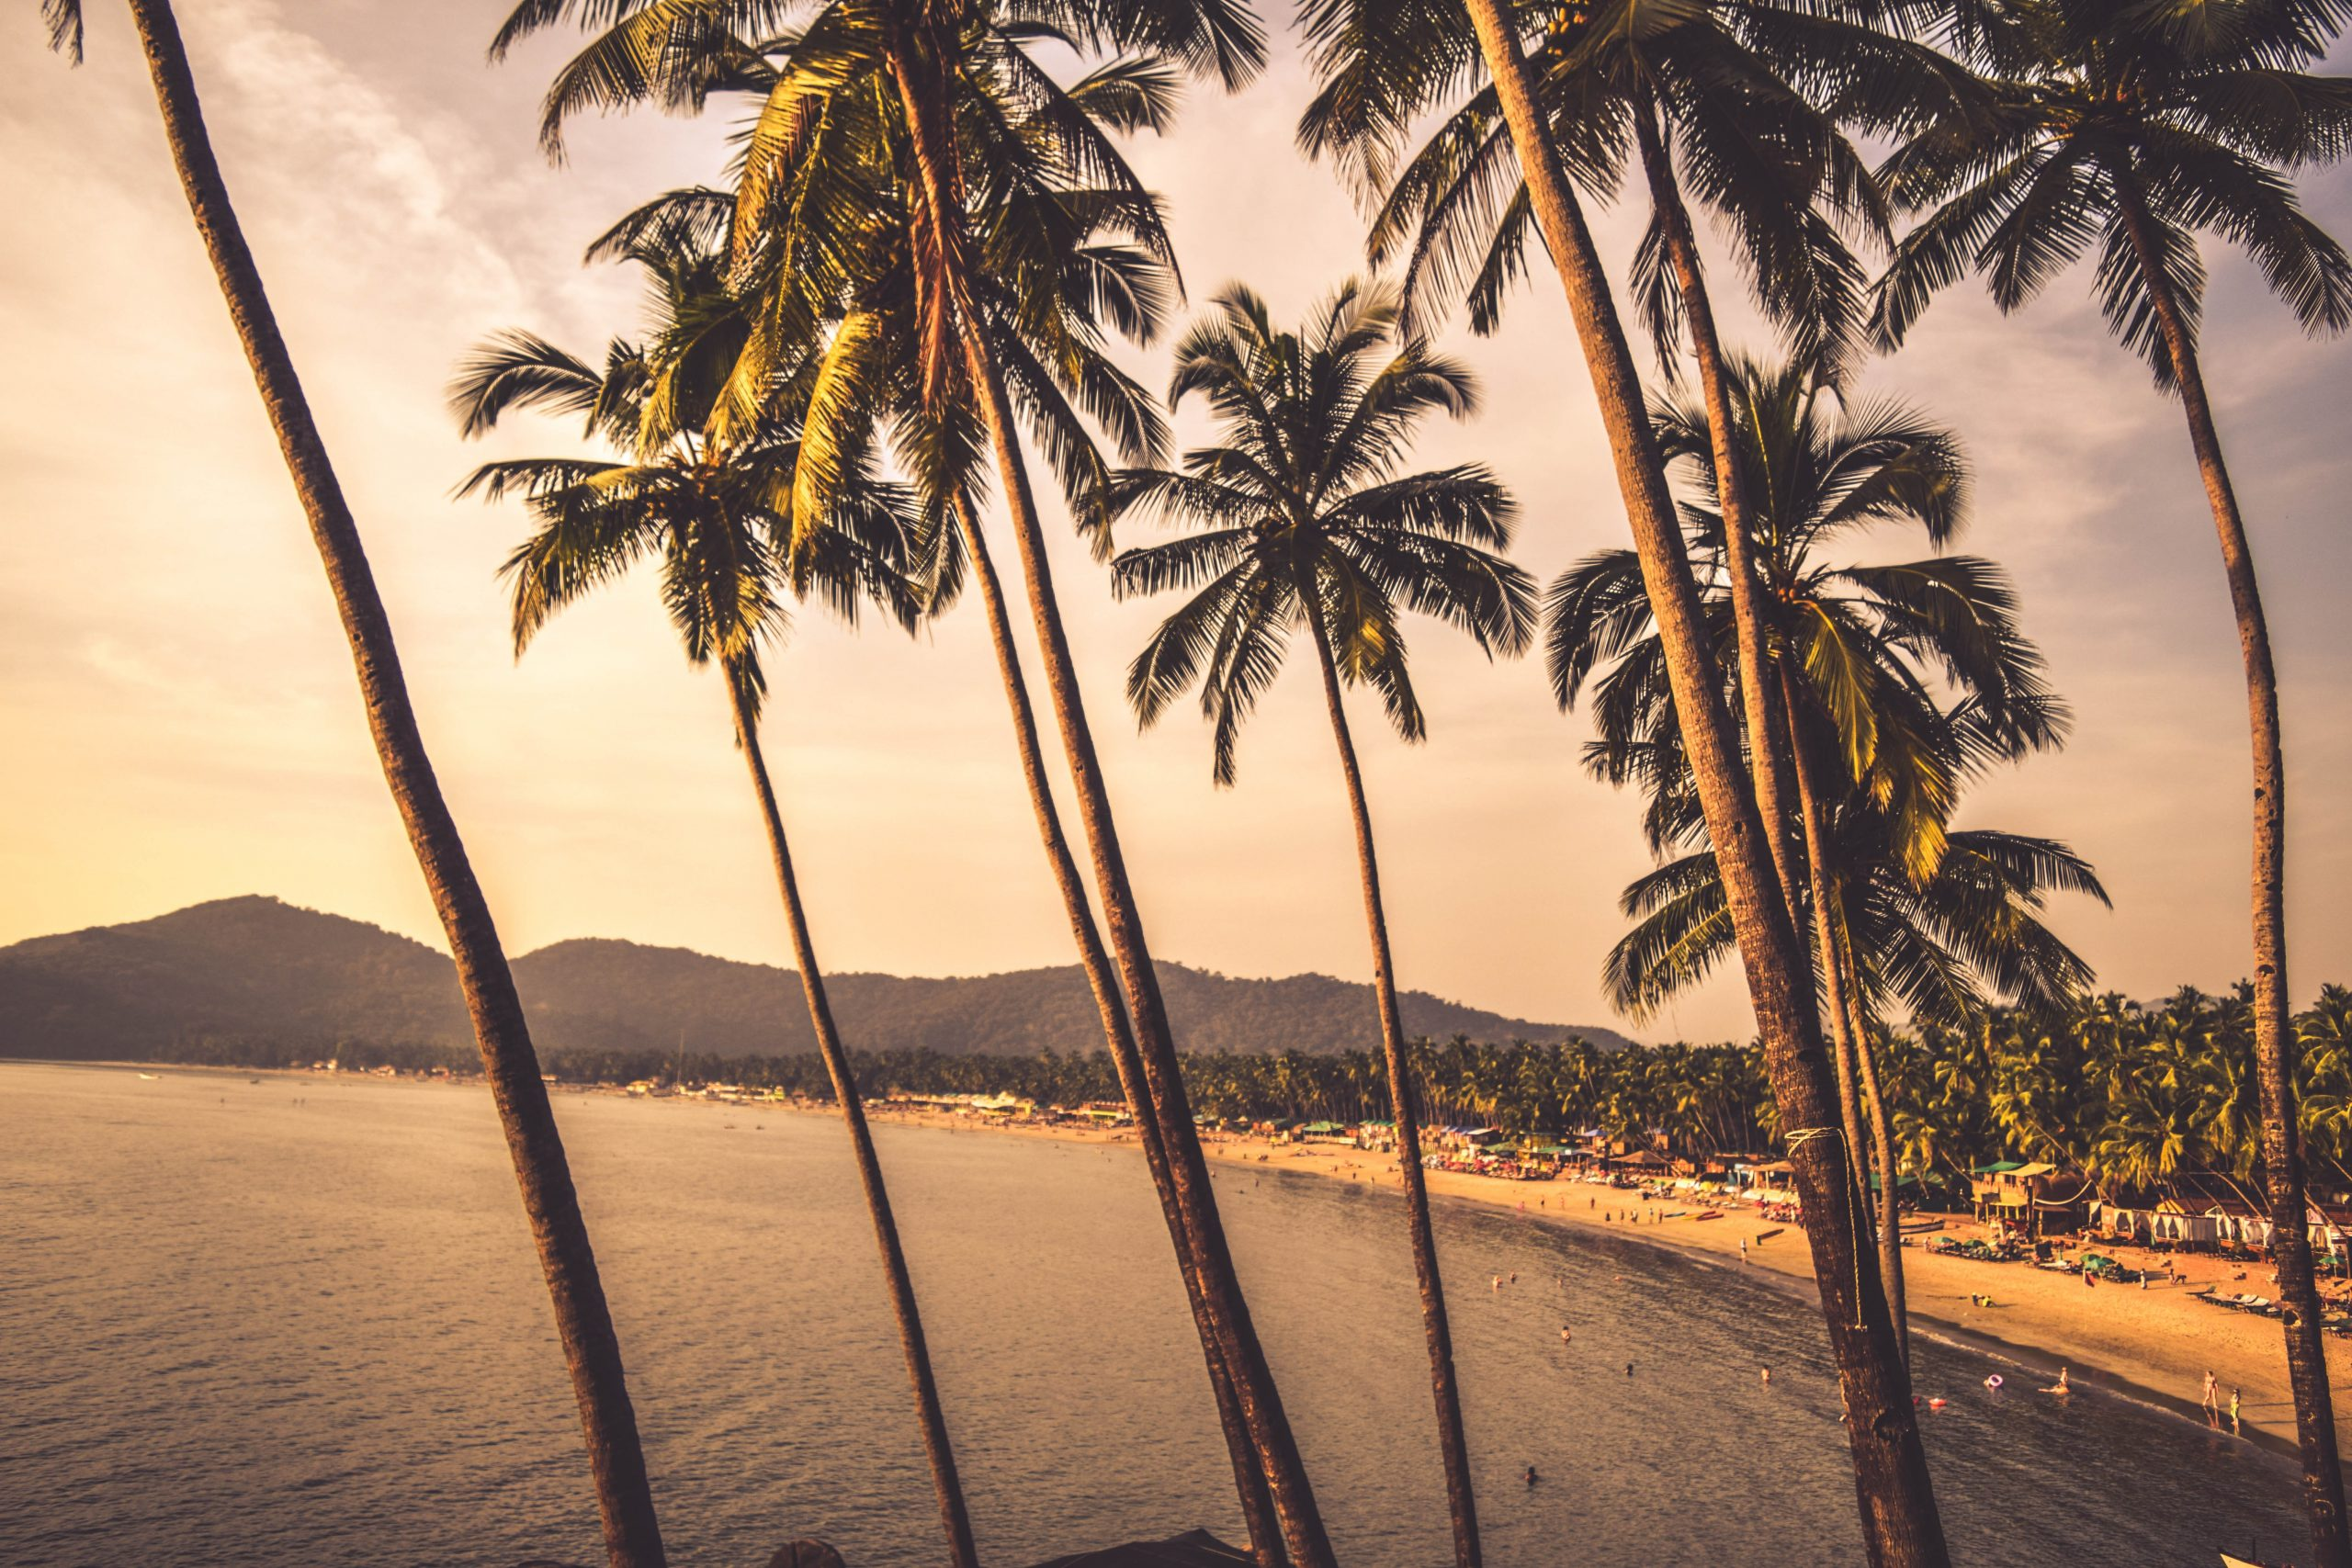 Endless beaches of Kerala